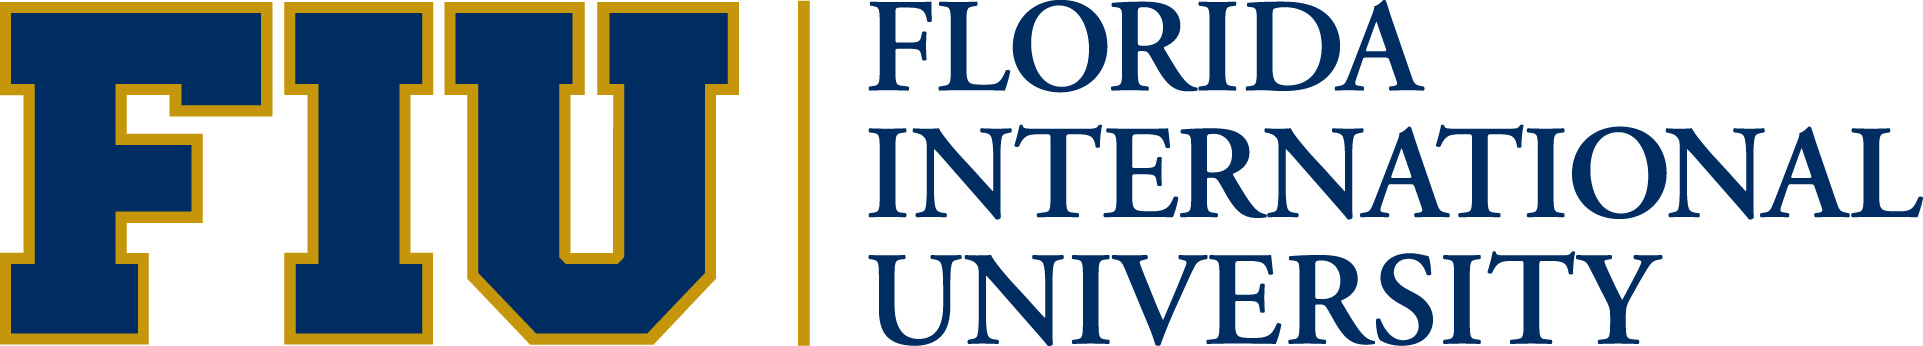 FLORIDA INTERNATIONAL UNIVERSITY - USA